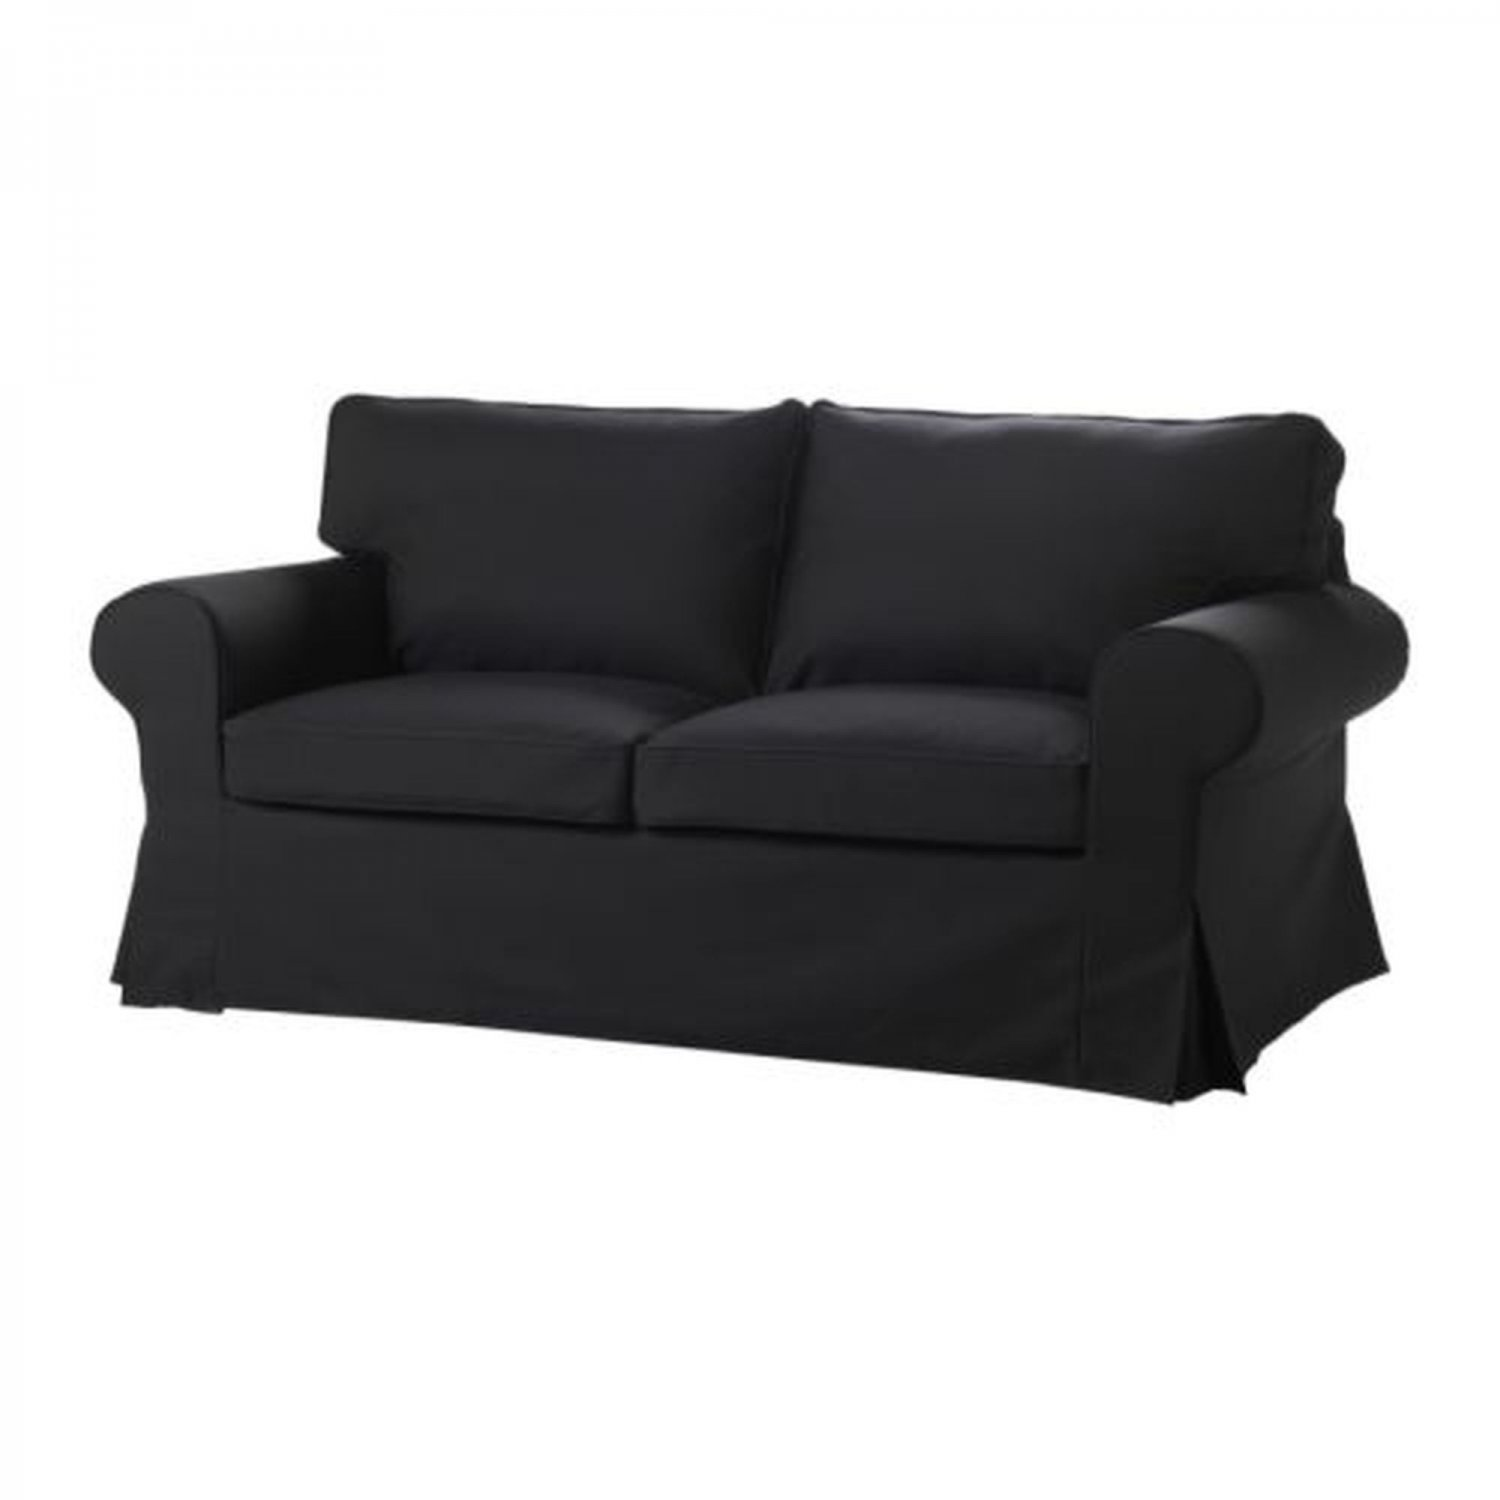 Ikea Ektorp Sofa Bed Slipcover Sofabed Cover Idemo Black